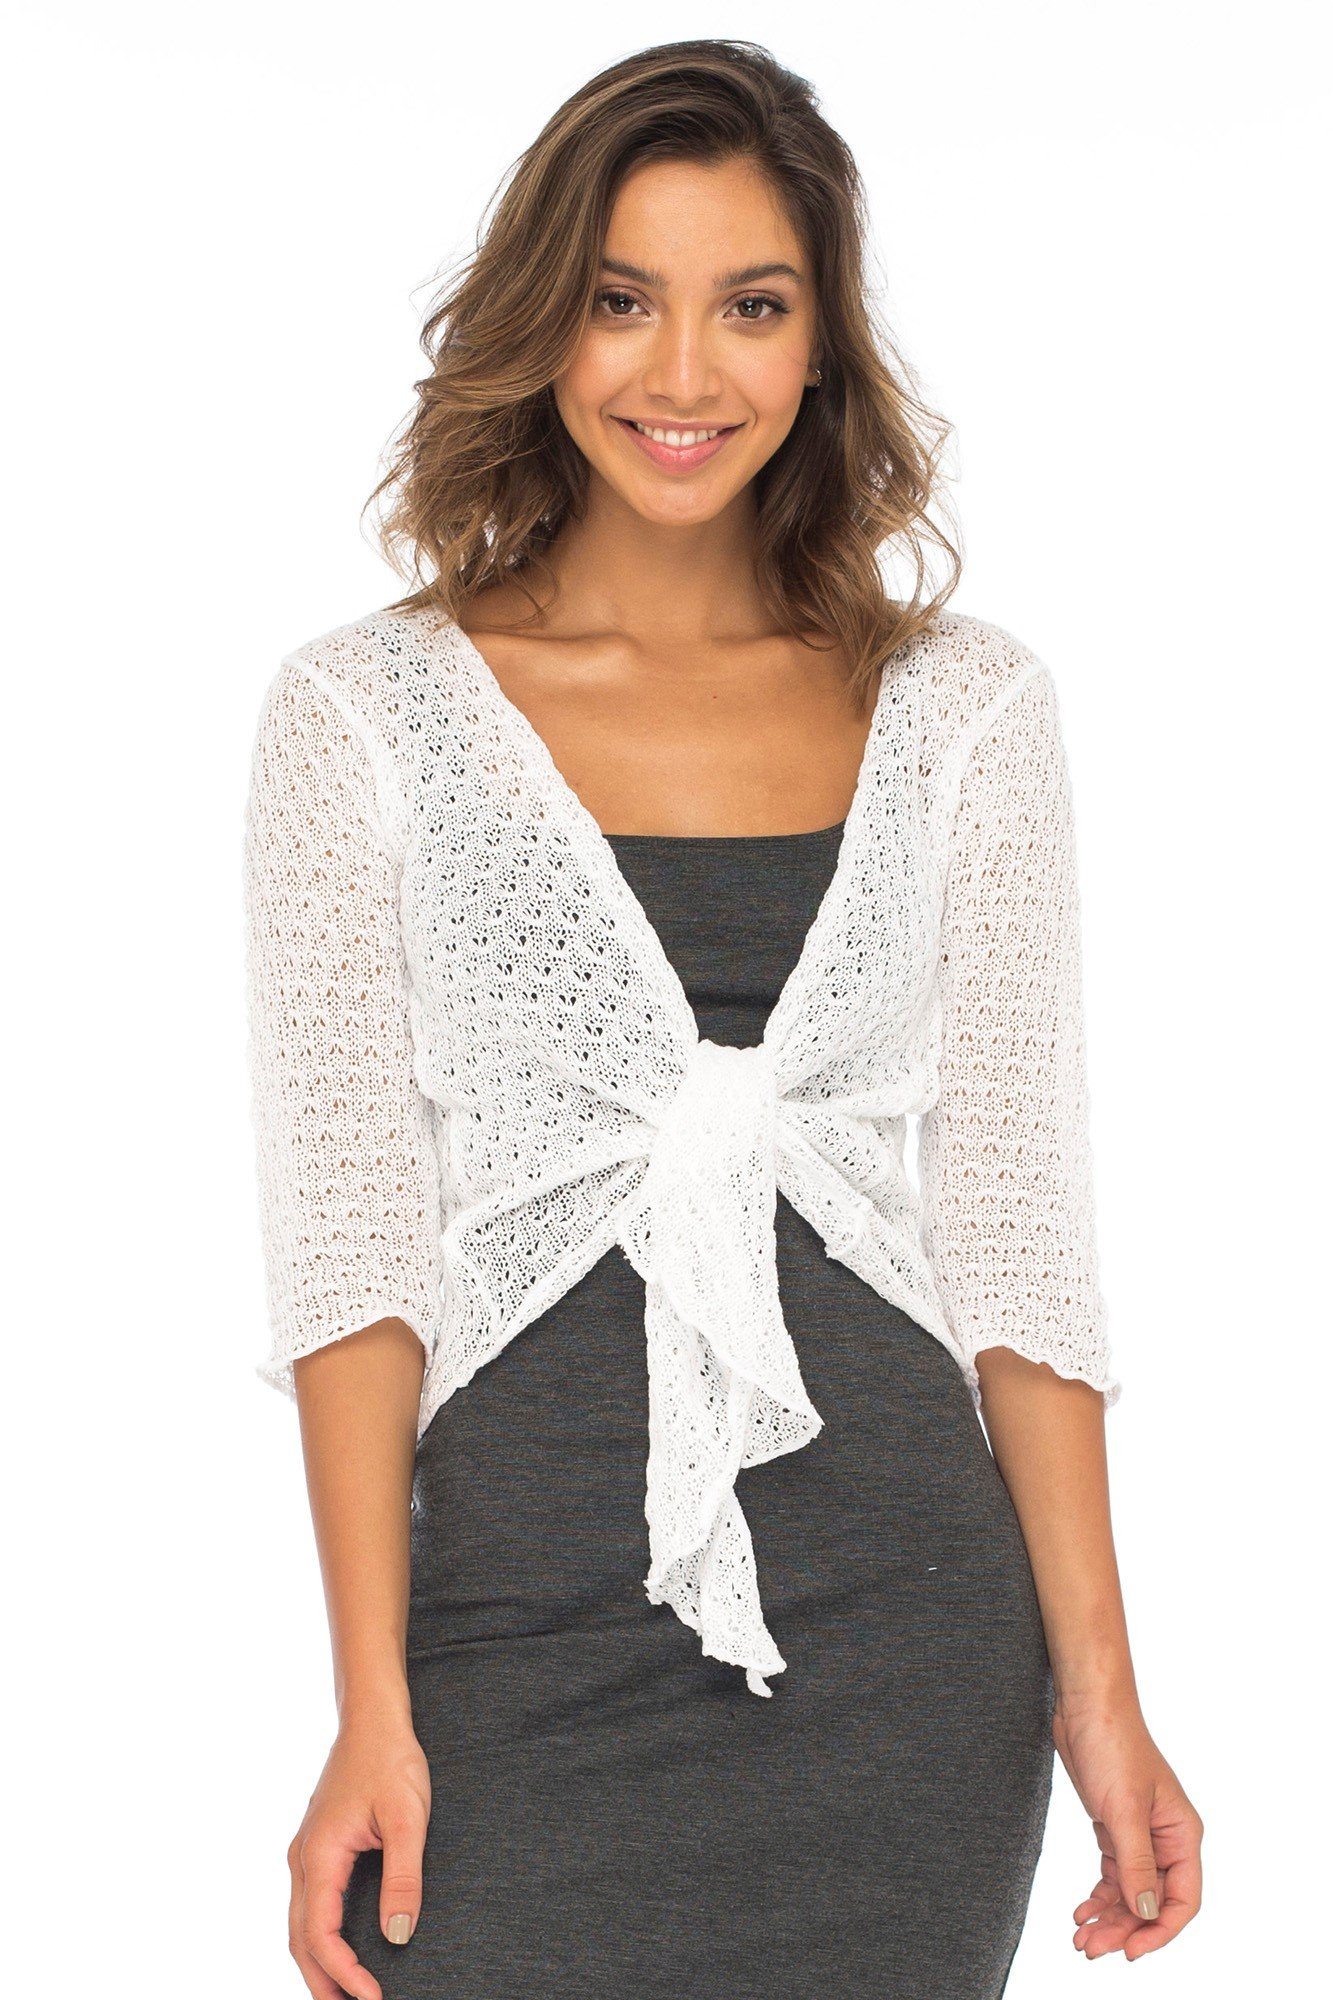 Back From Bali Womens Shrug Cardigan 100% Cotton Lightweight Knit Sweater Tie Front White